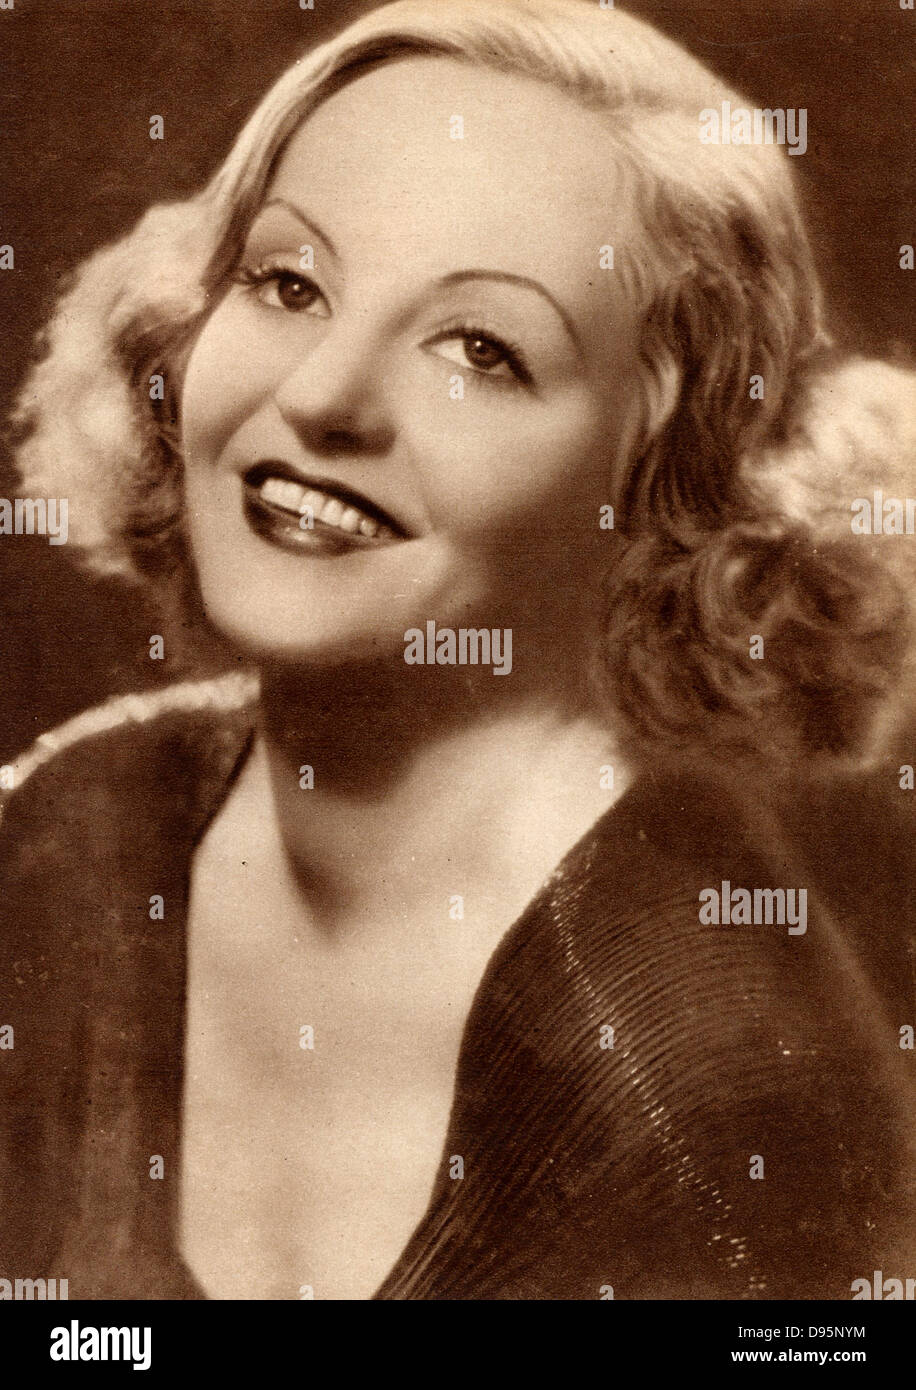 Tallulah Bankhead (1903-1968) American actress and film star. - Stock Image